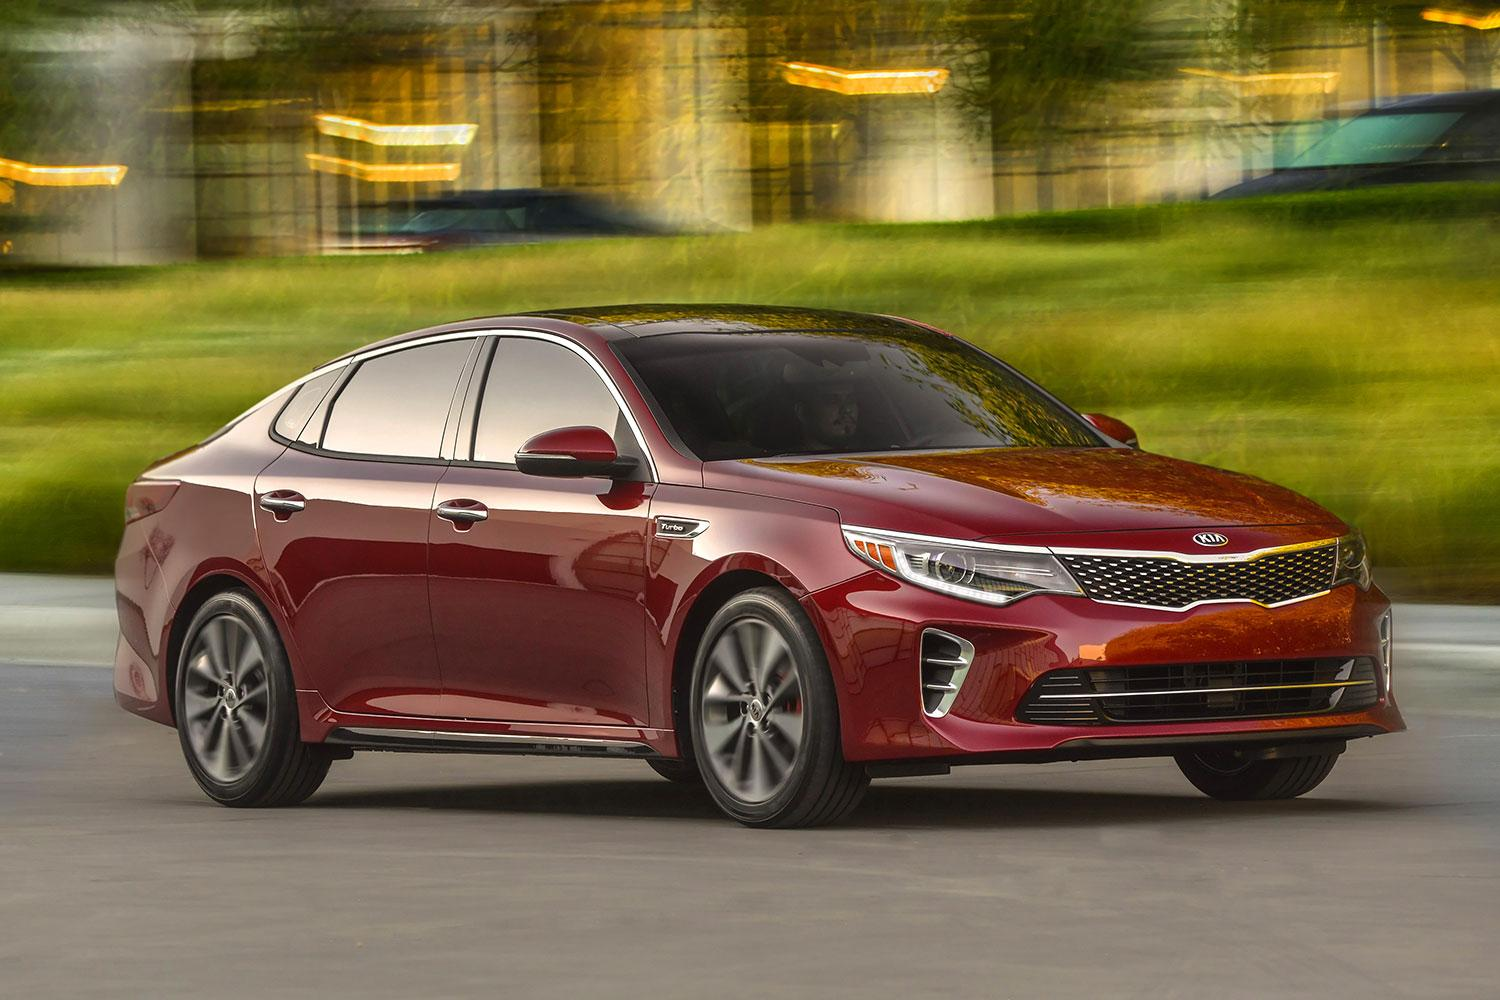 2016 kia optima specs picutres performance news digital trends. Black Bedroom Furniture Sets. Home Design Ideas